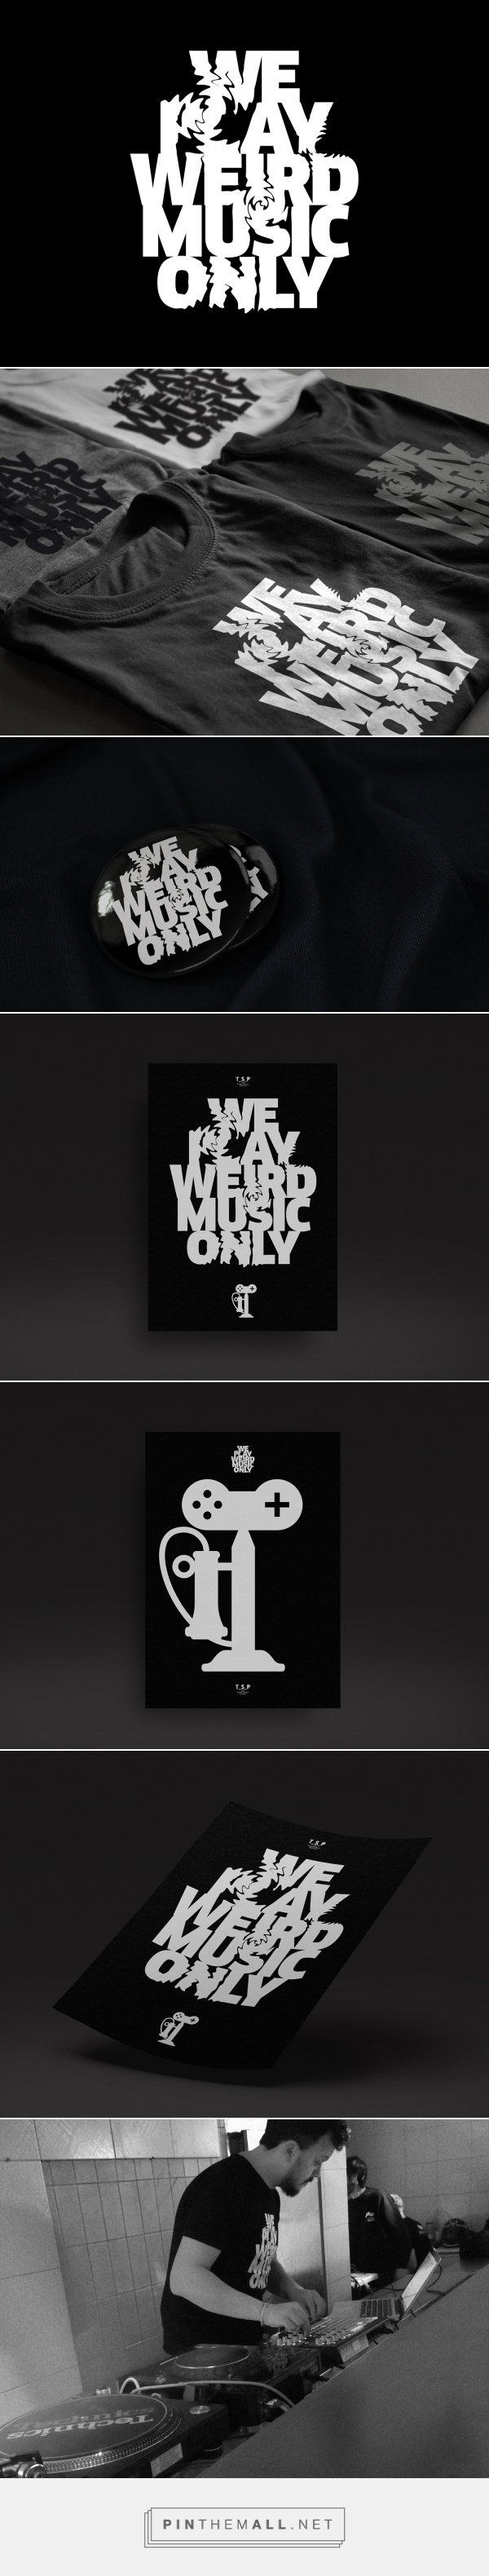 We play weird music only TSP on Behance... - a grouped images picture - Pin Them All